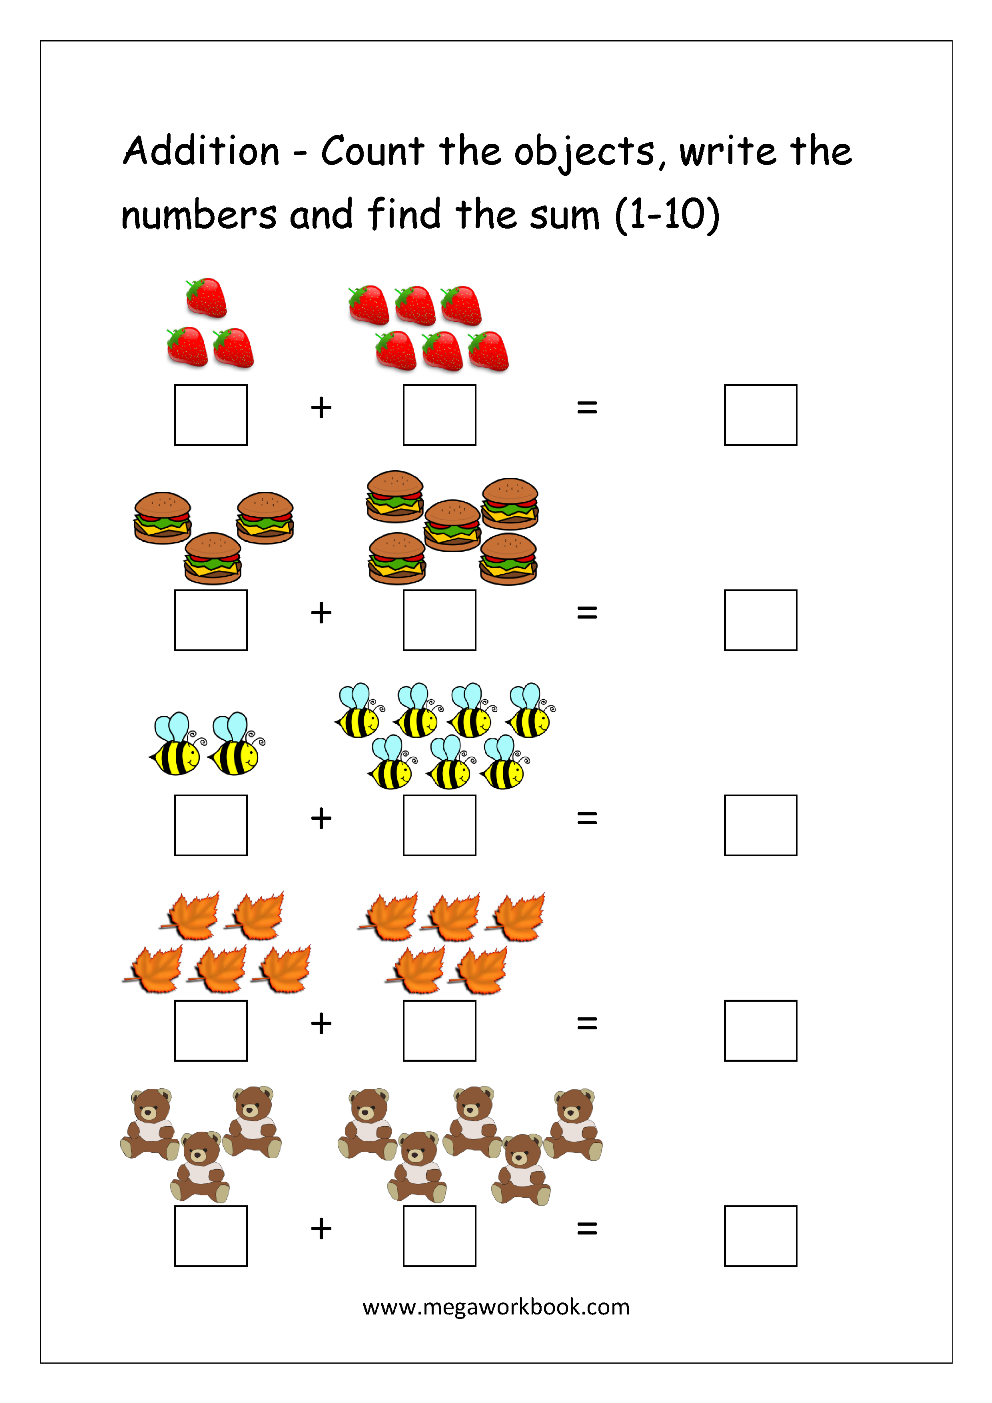 Free Printable Number Addition Worksheets 1 10 For